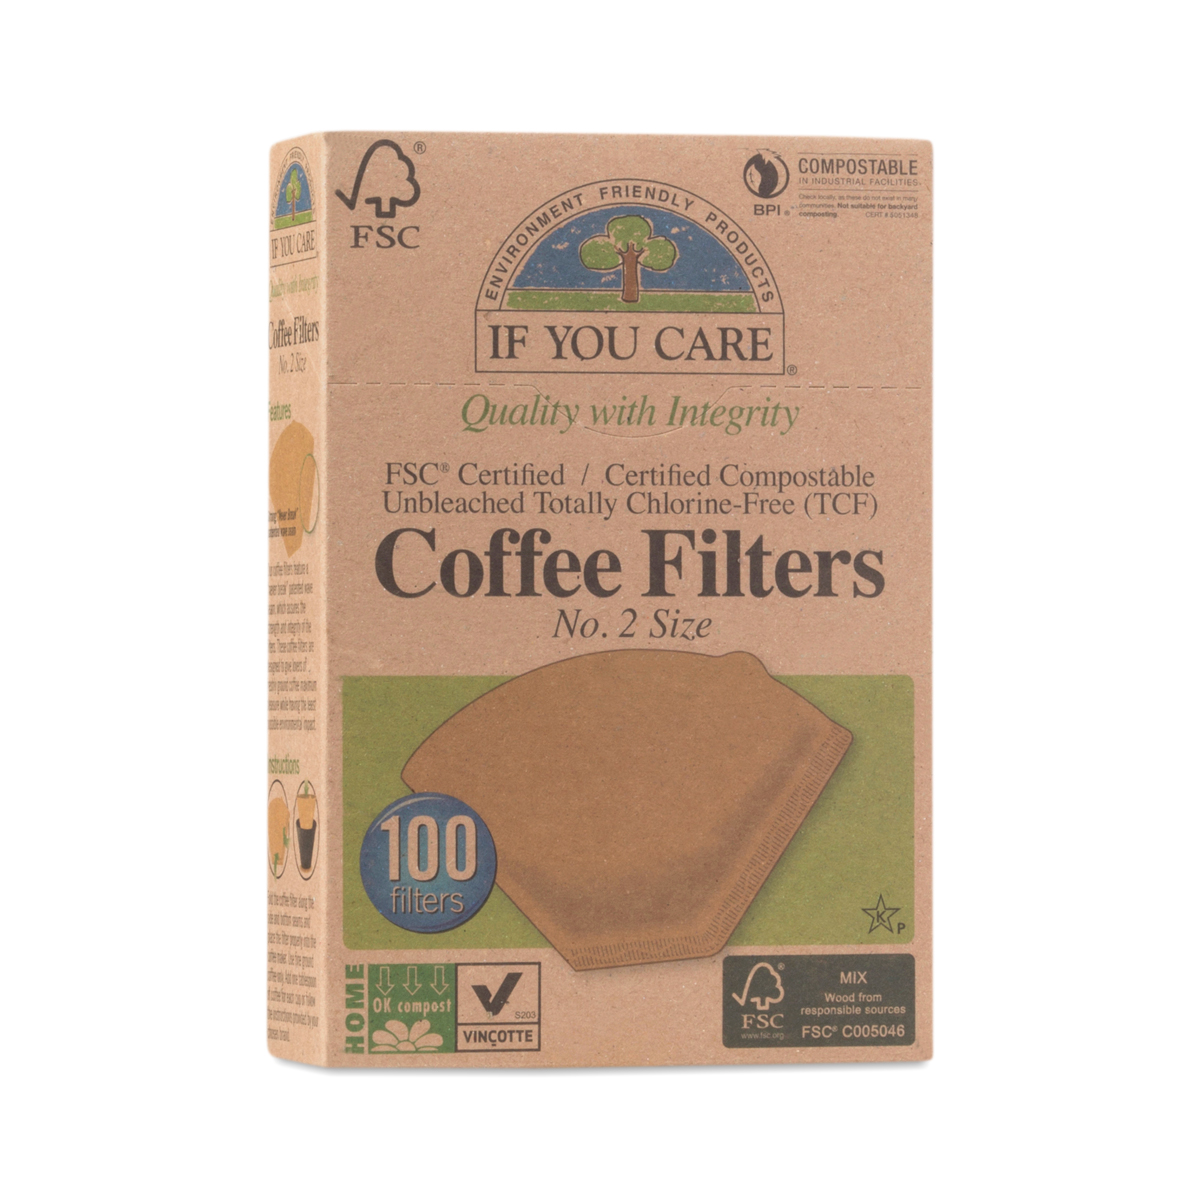 IF YOU CARE Compostable Certified Coffee Filters, #2 Cone